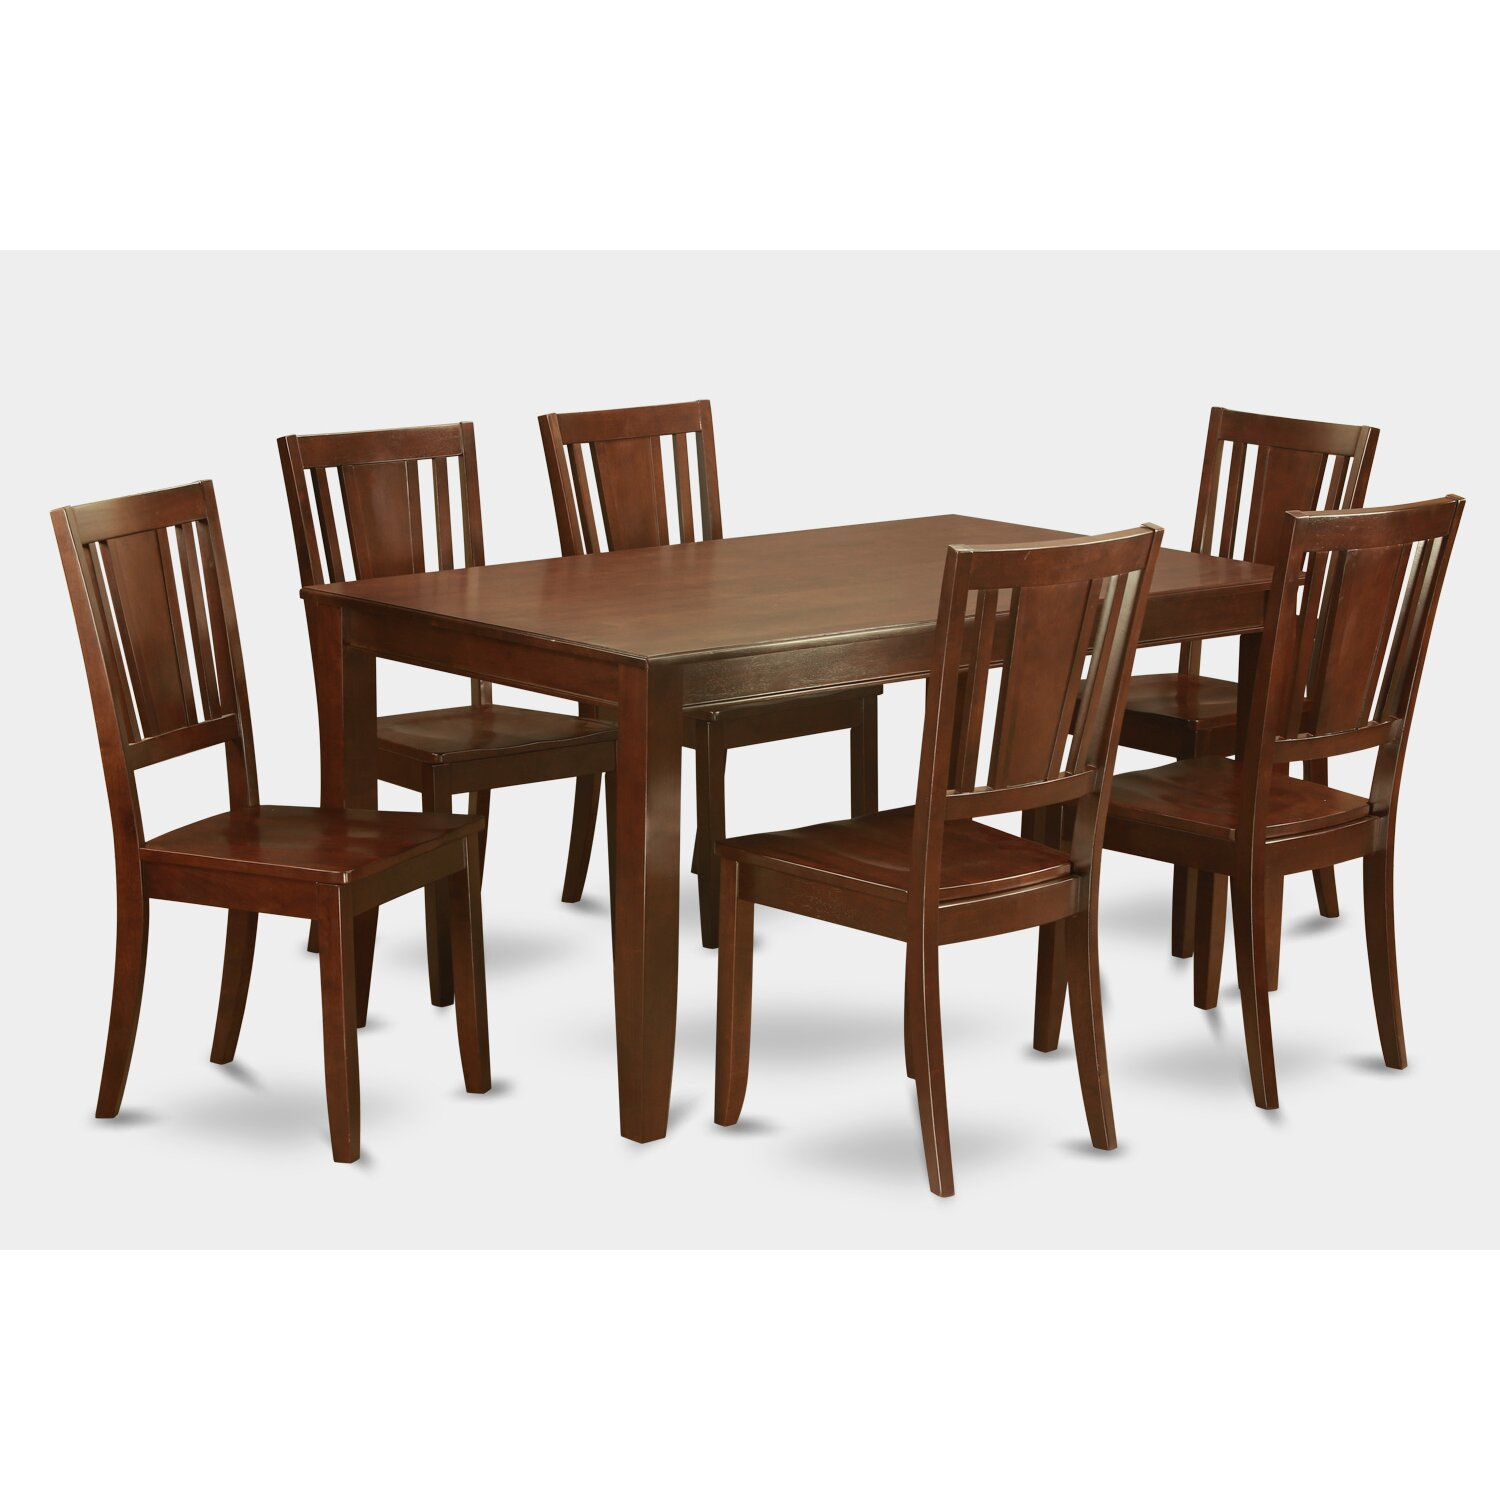 Dudley 7 piece dining set wayfair for 7 piece dining set